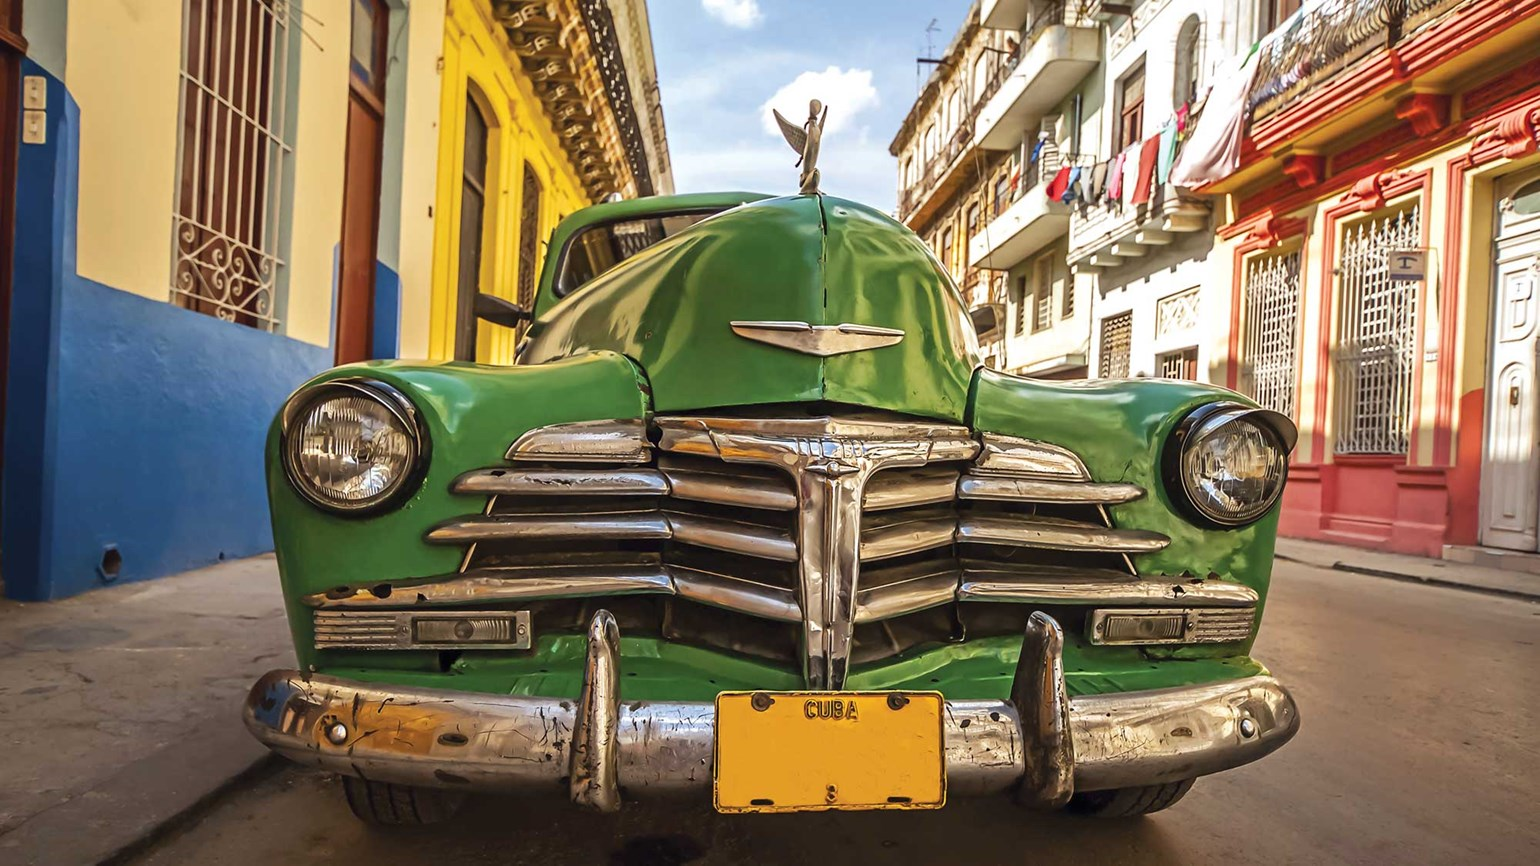 Industry sees great opportunity in re-establishing relations with Cuba